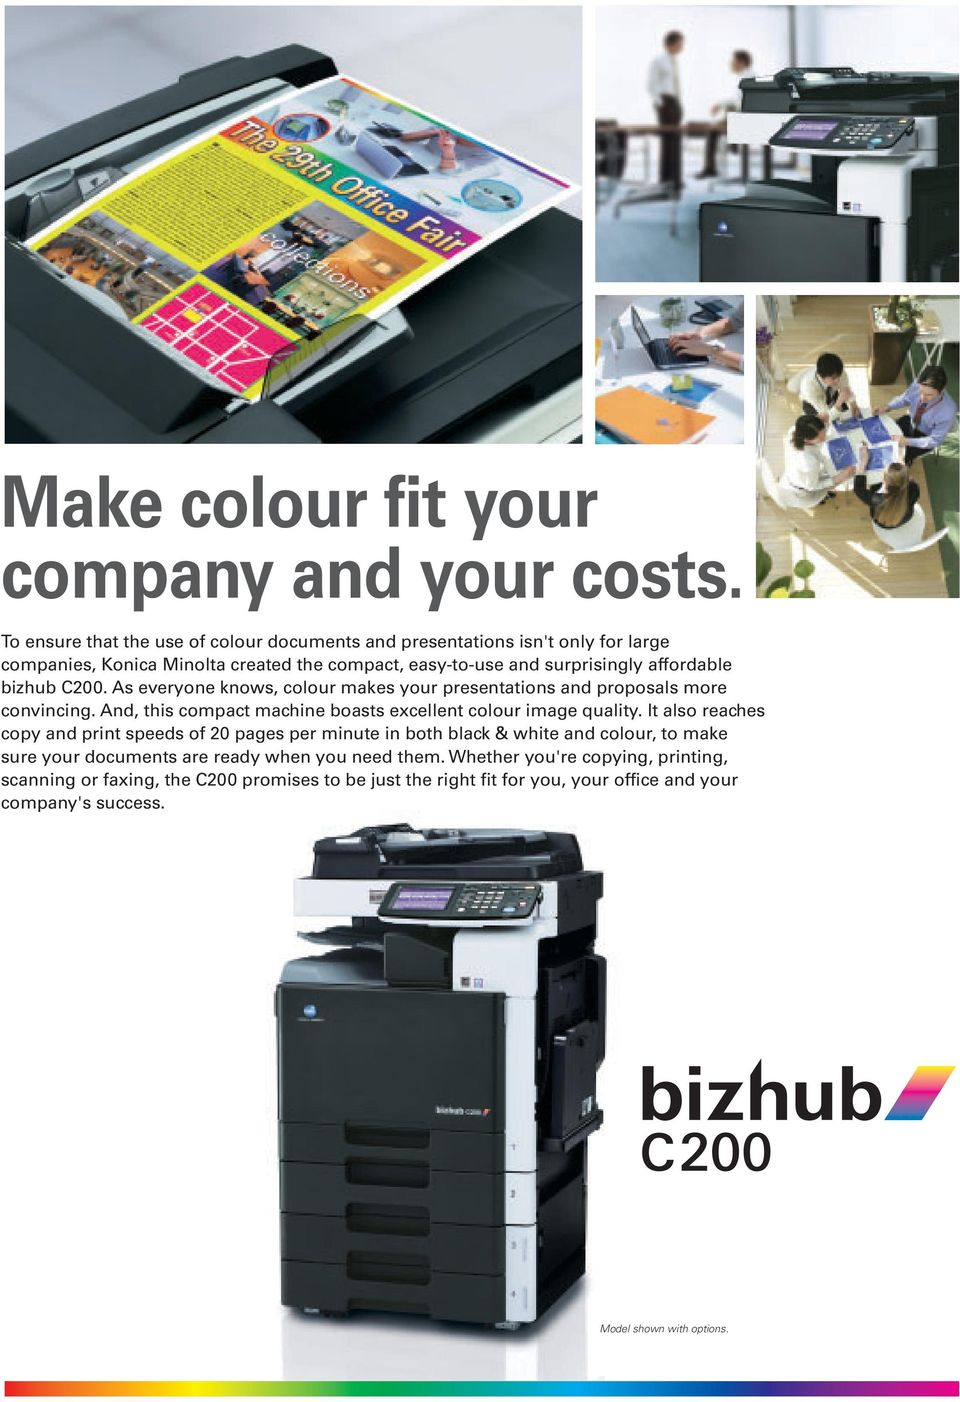 bizhub C200. As everyone knows, colour makes your presentations and proposals more convincing. And, this compact machine boasts excellent colour image quality.